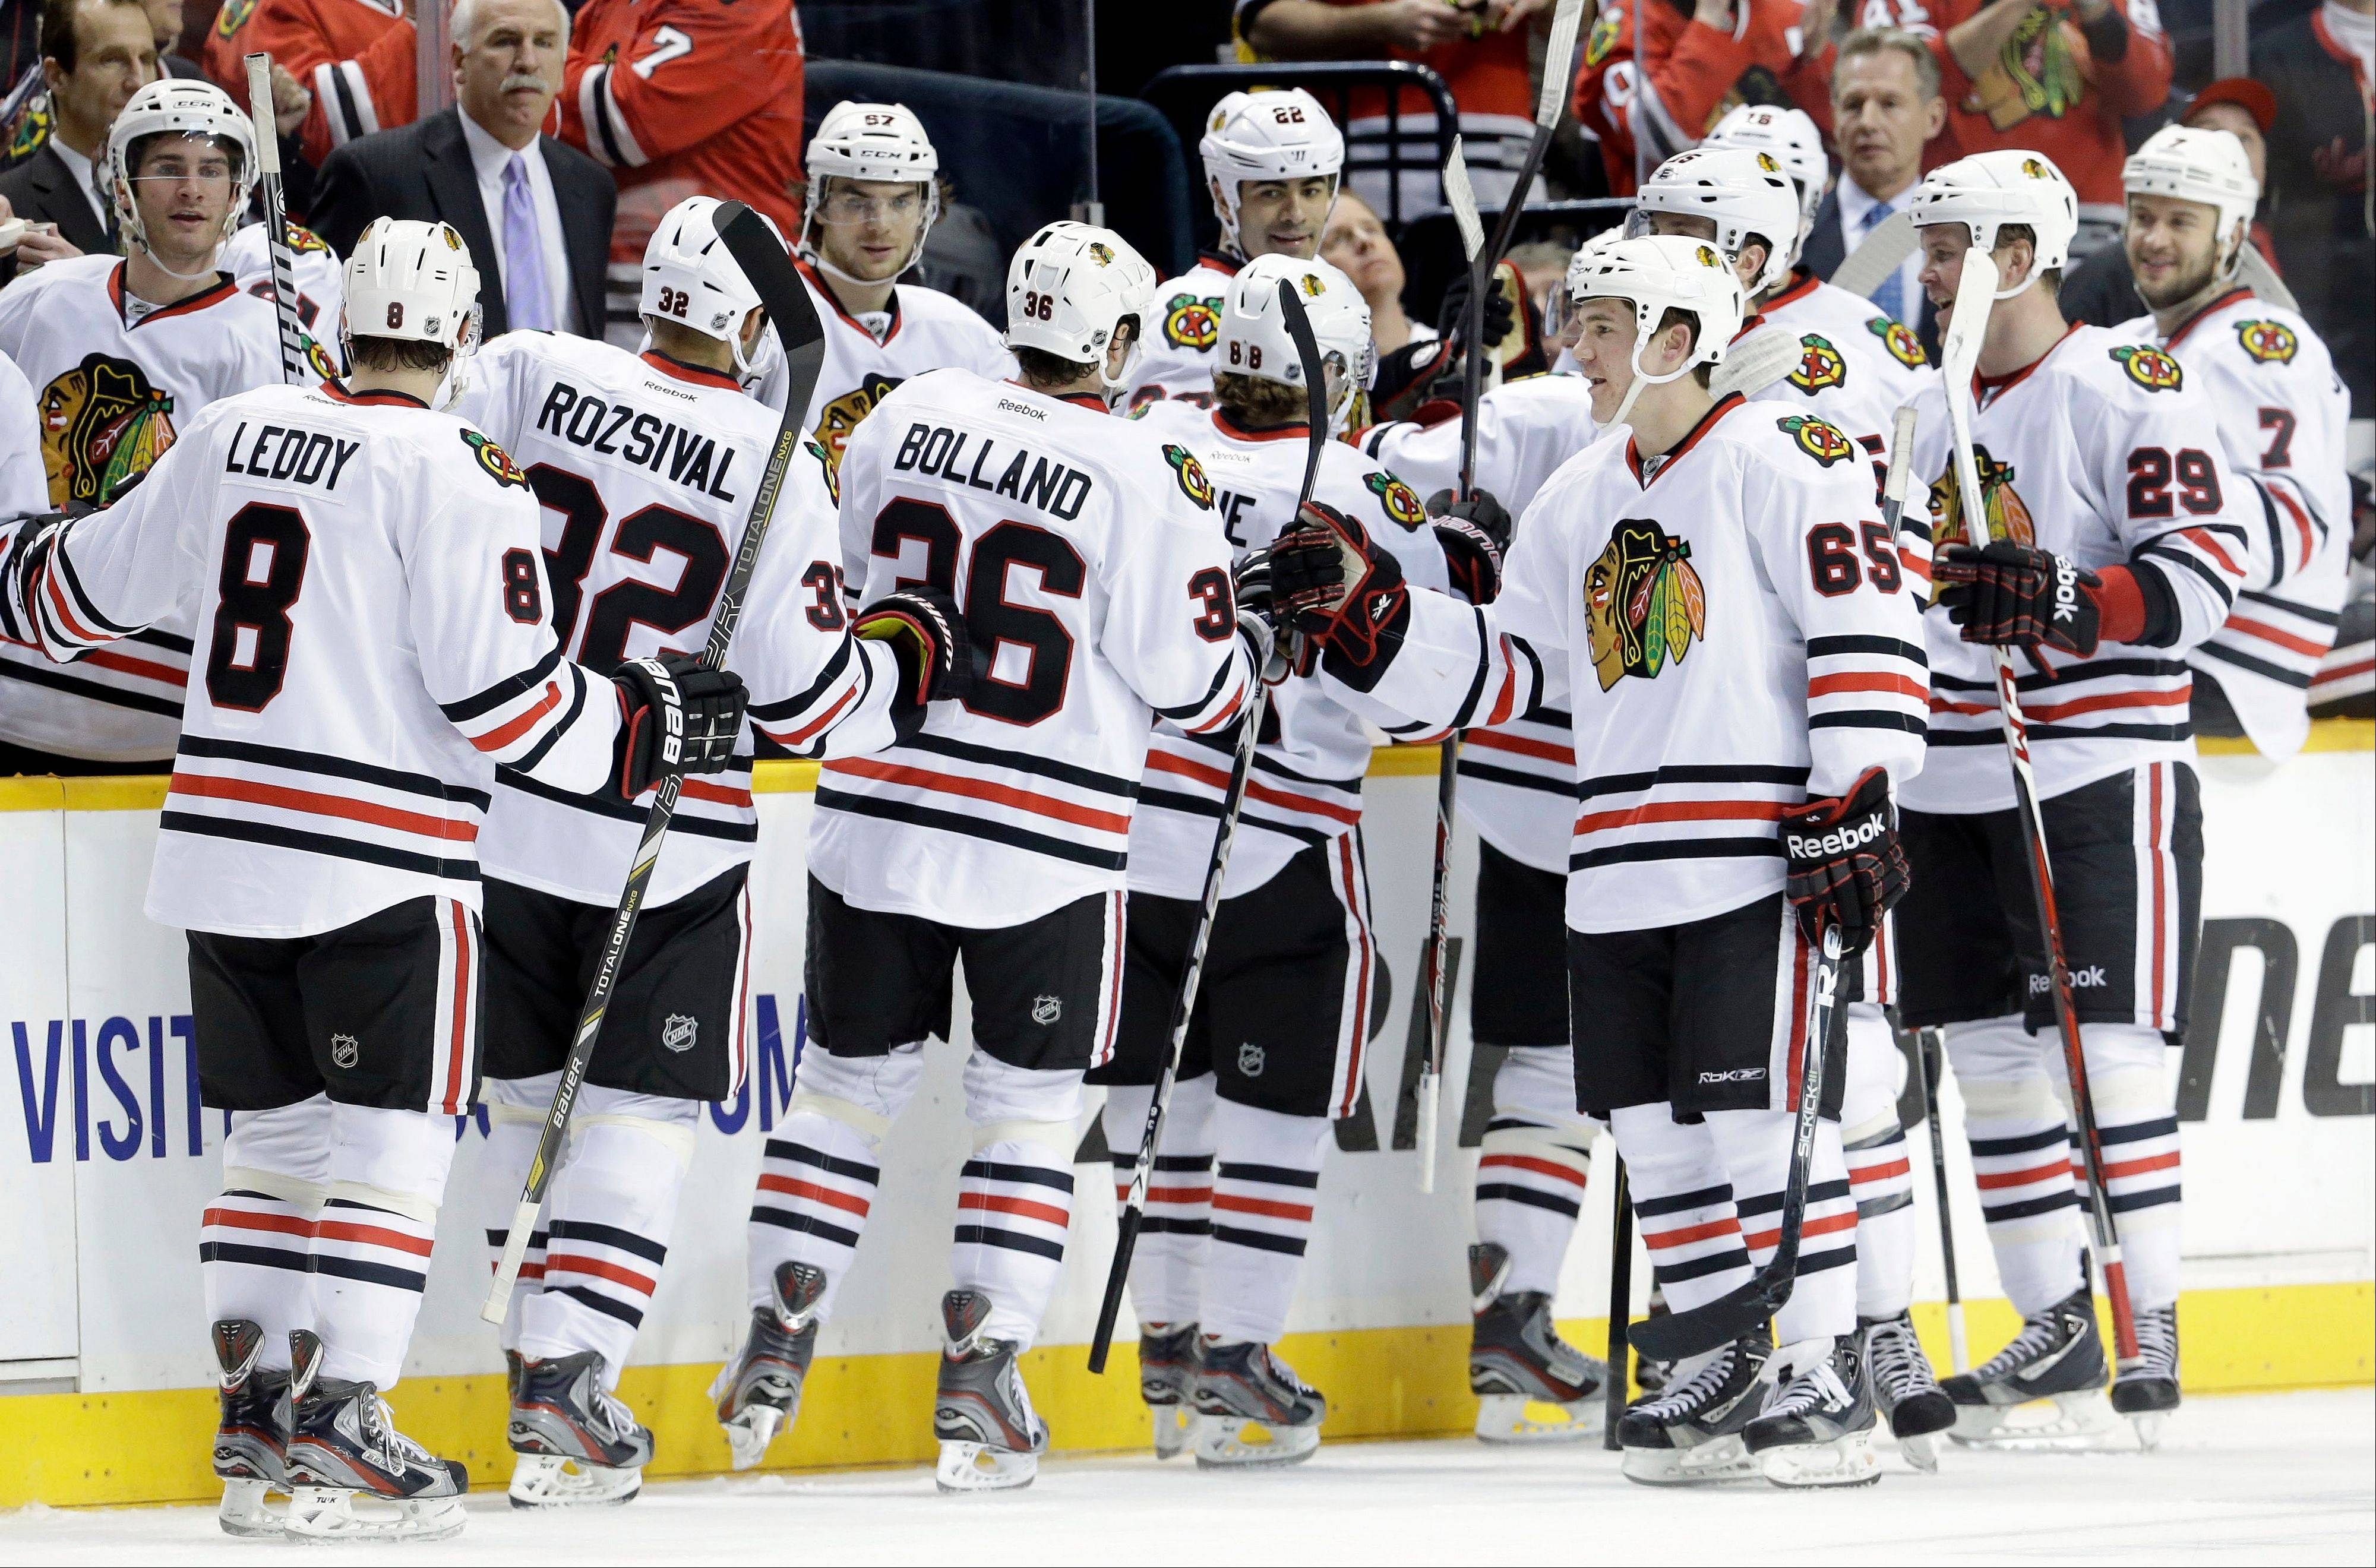 Blackhawks players celebrate a goal by Patrick Kane against the Nashville Predators Sunday during the third period in Nashville, Tenn. The Blackhawks won 3-0.